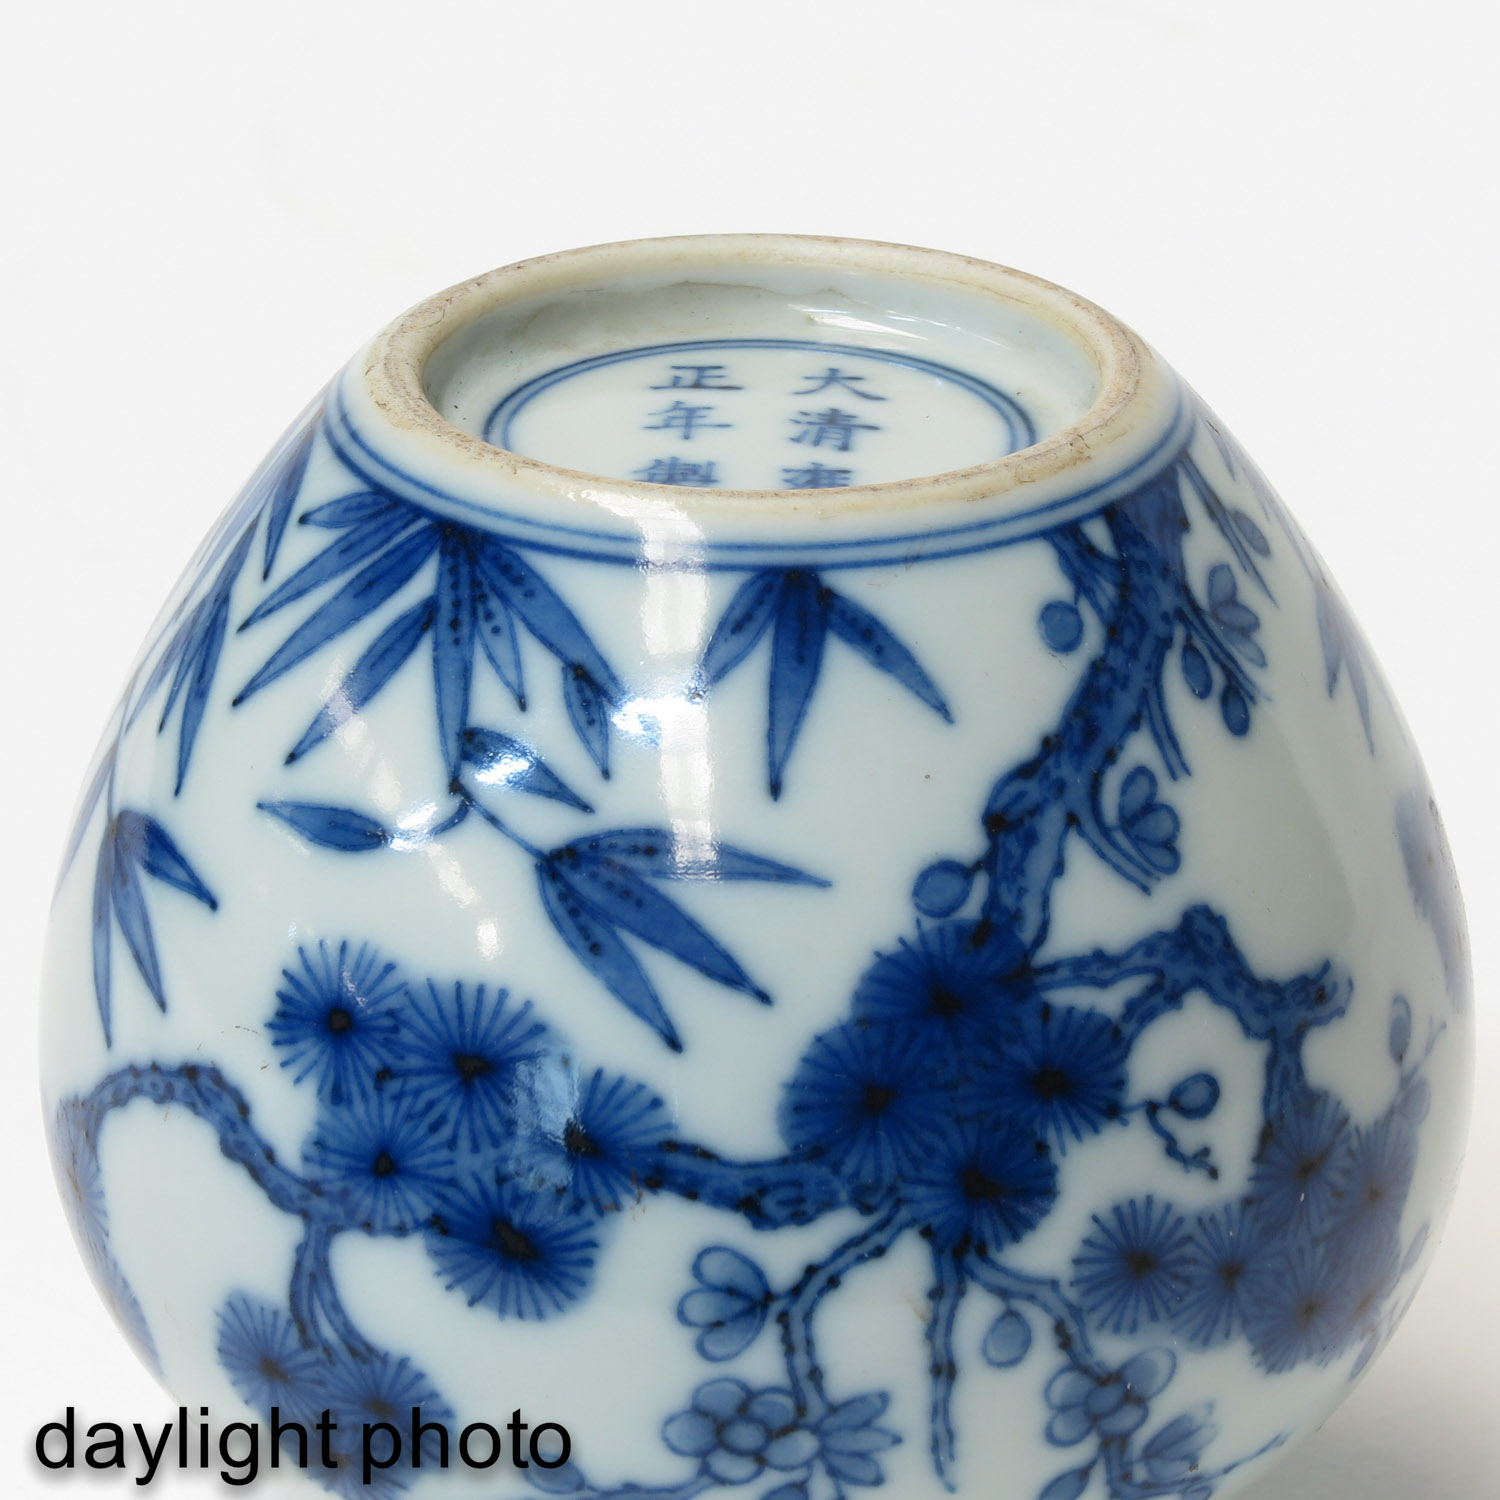 A Small Blue and White Vase - Image 8 of 9